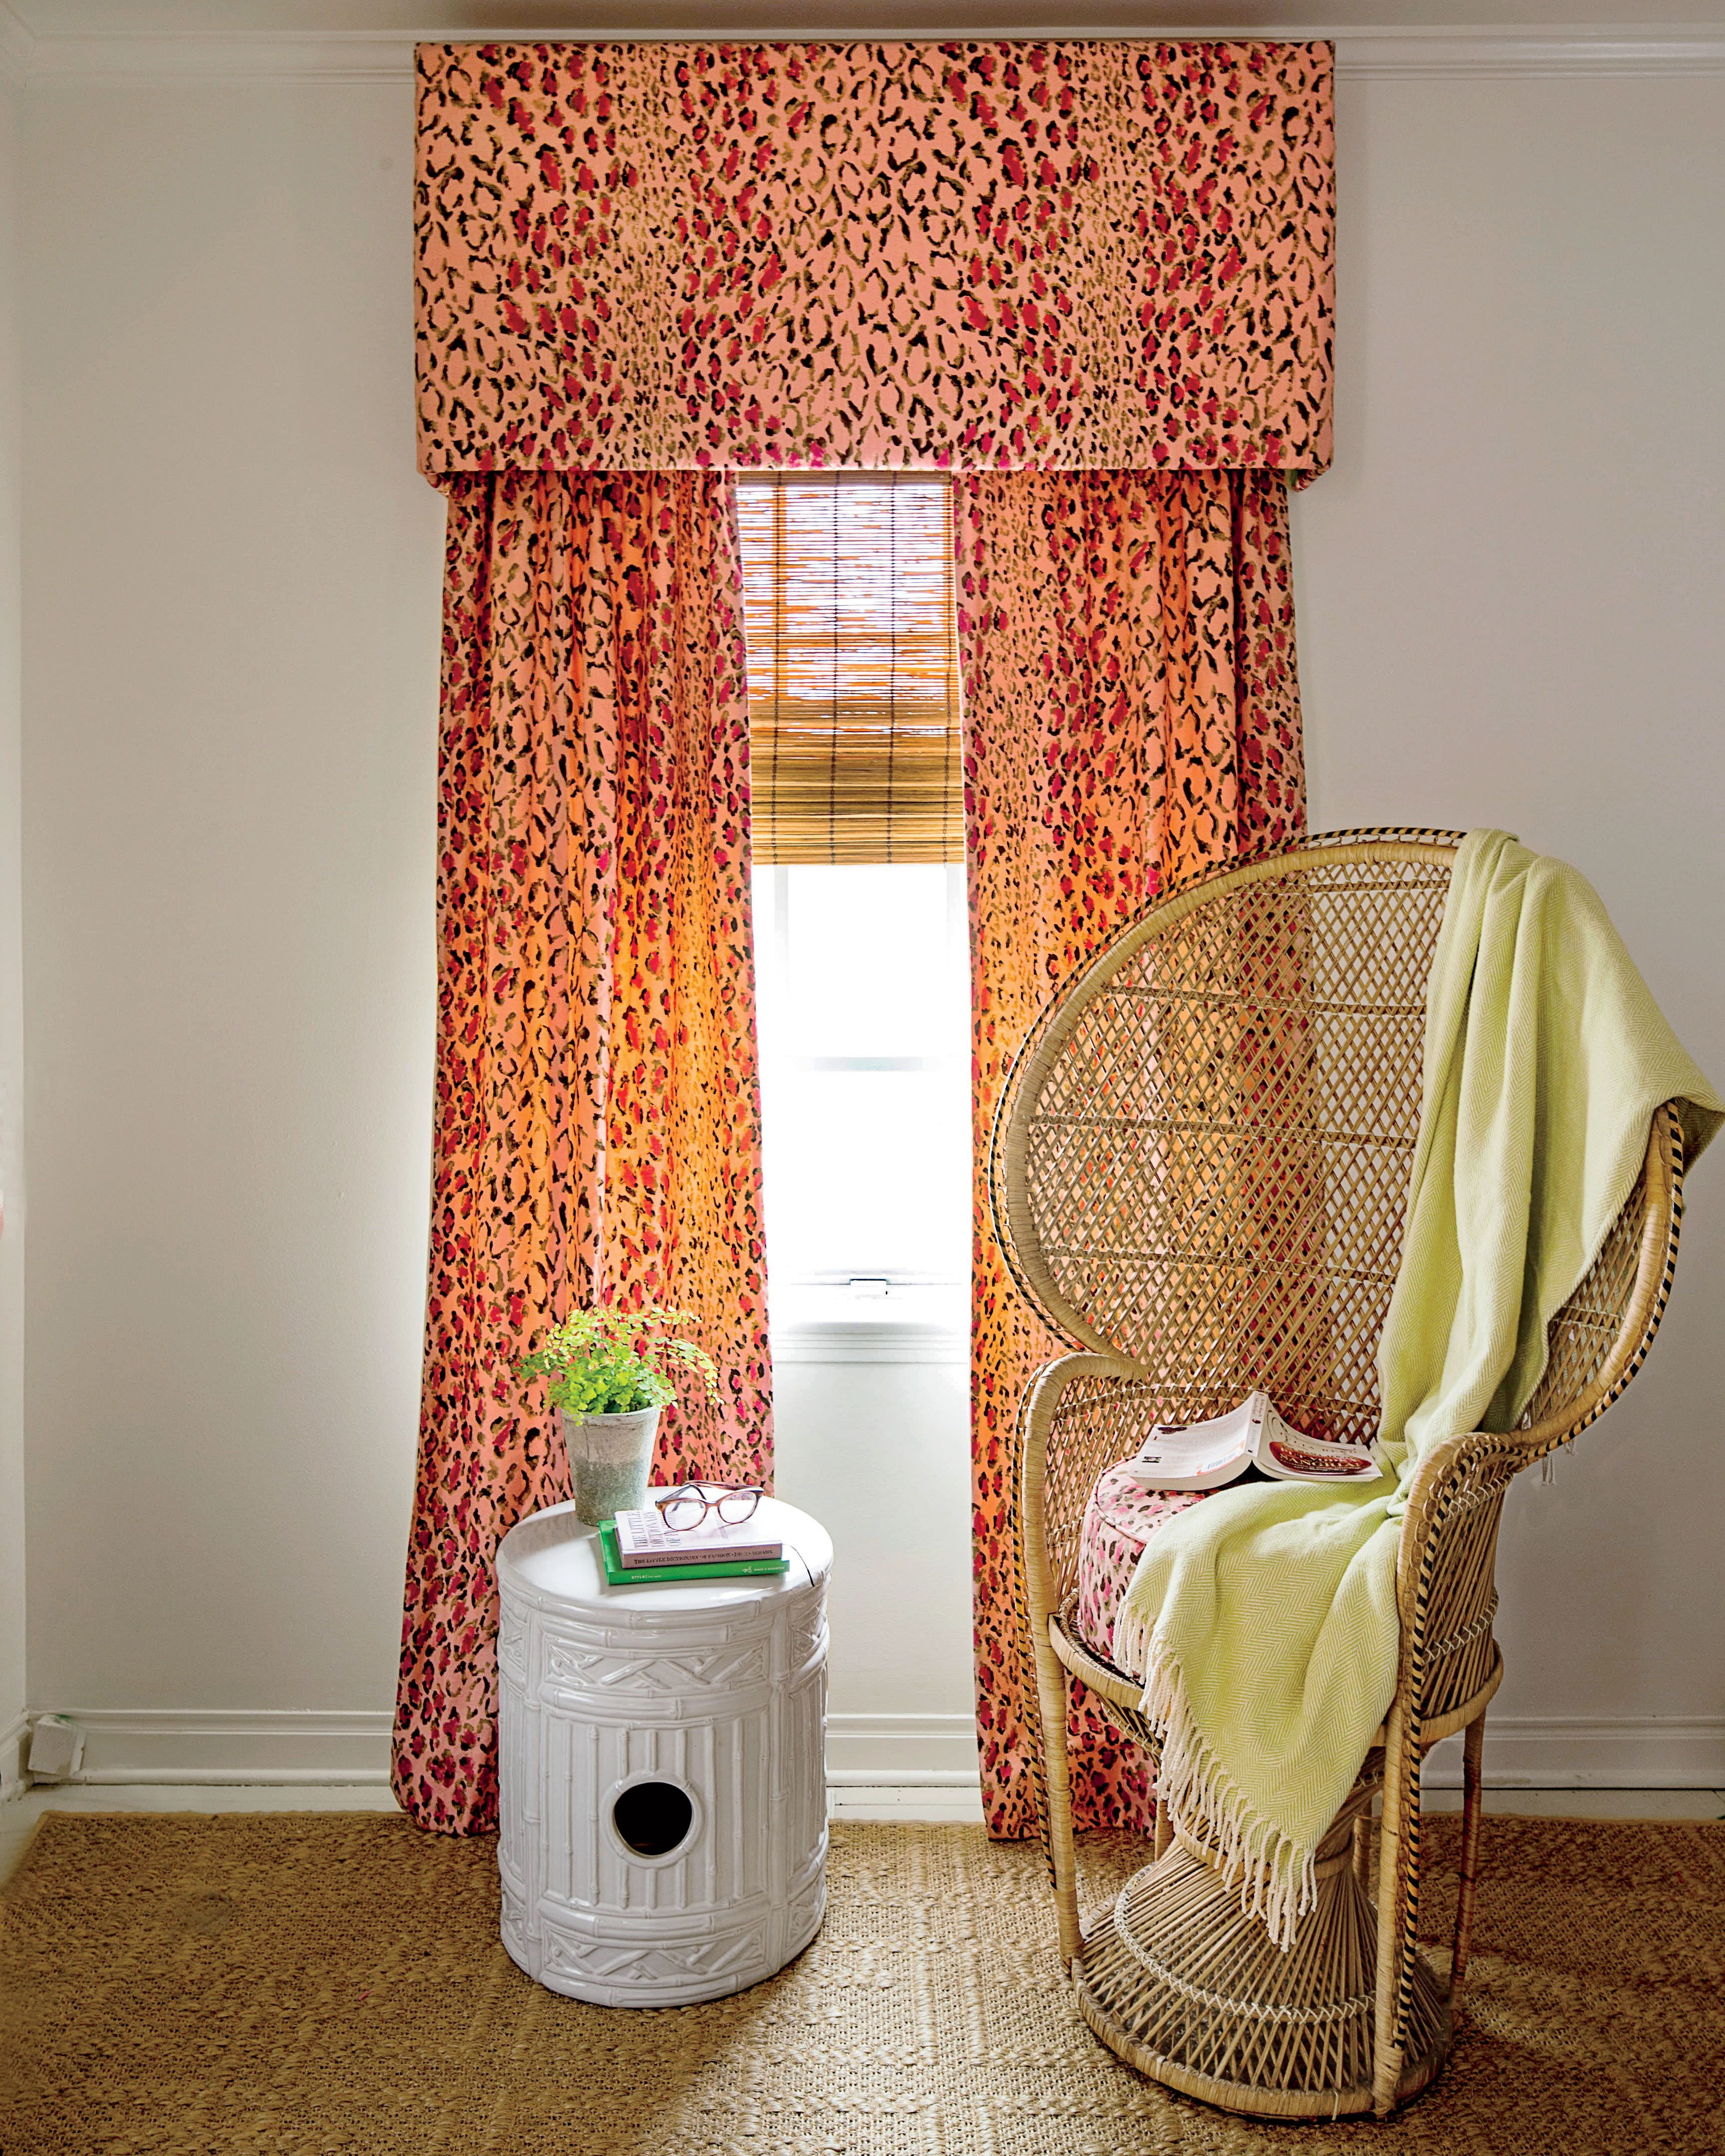 How To Make Your Own Window Valance Every Spring I Think